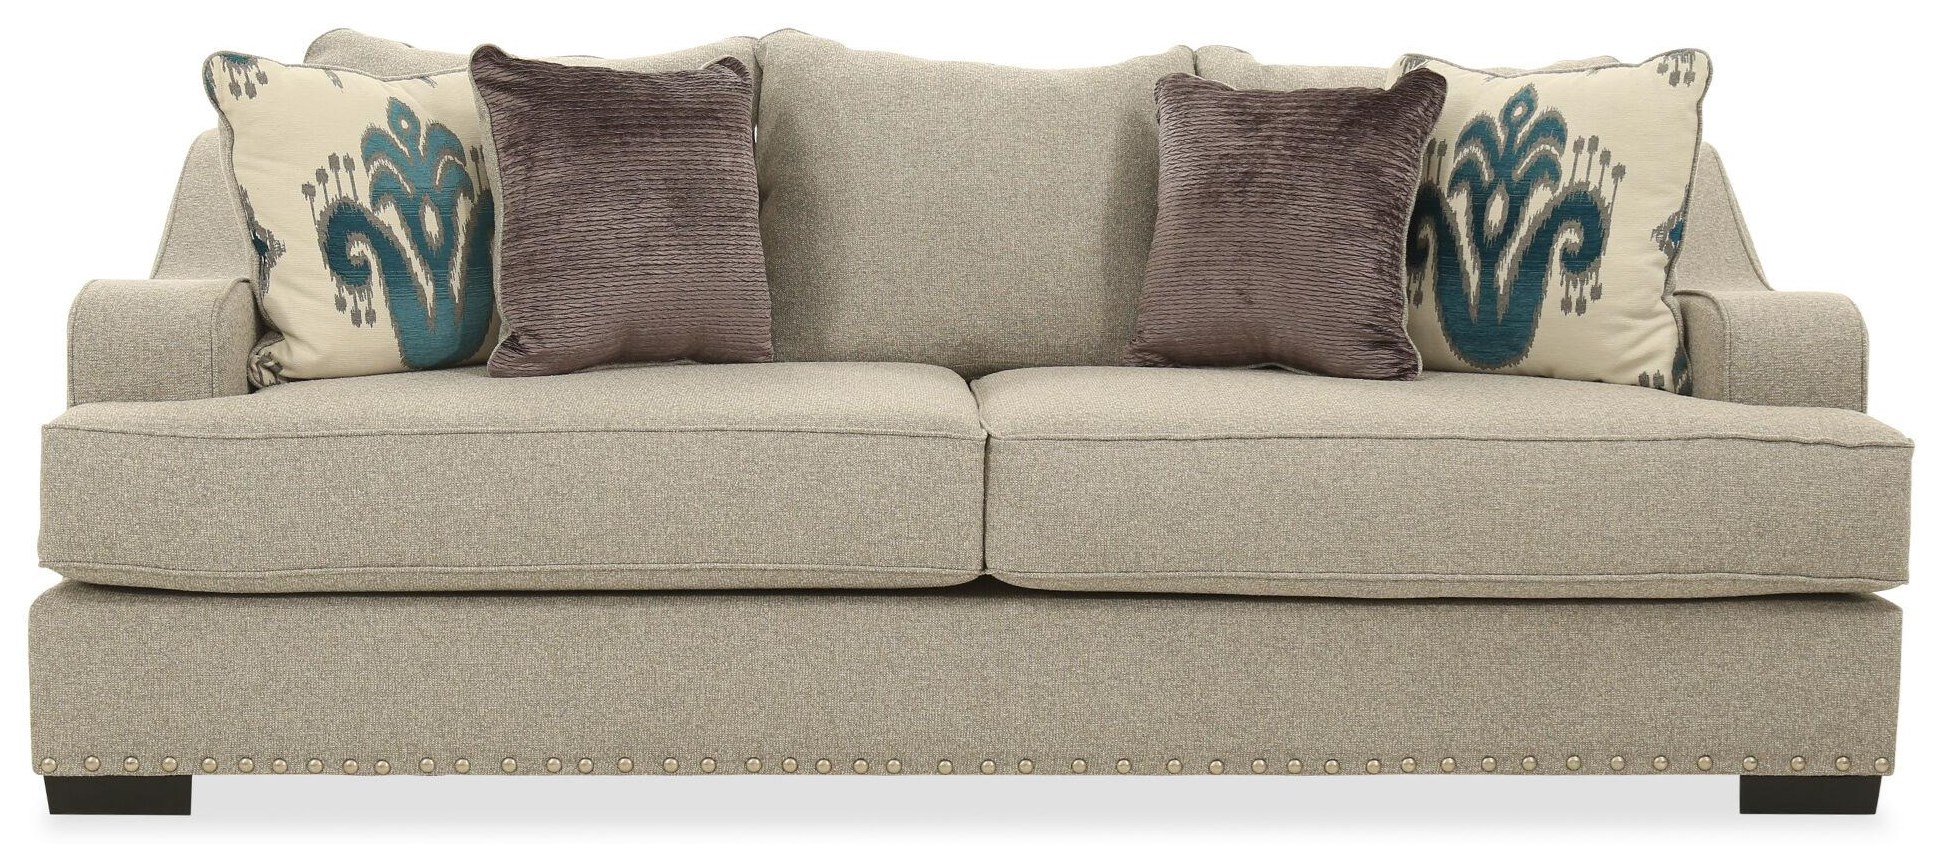 Jayne Southpaw Rocky Sofa by Michael Nicholas at Beck's Furniture